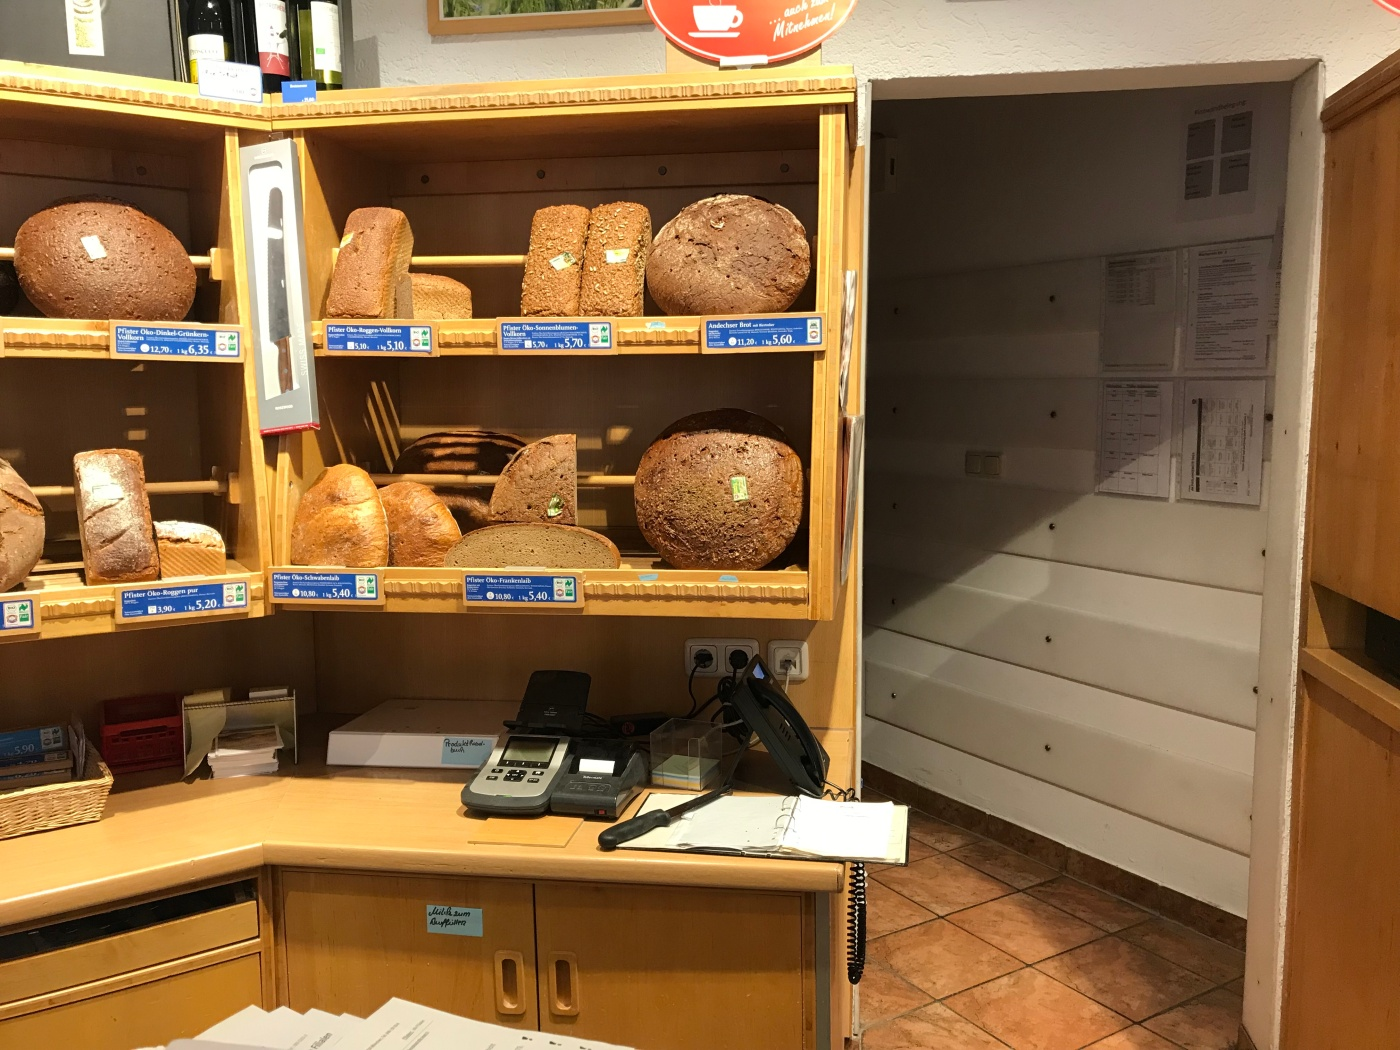 Hopfisterei Bread - Buying Bread in Germany - Munich Bread